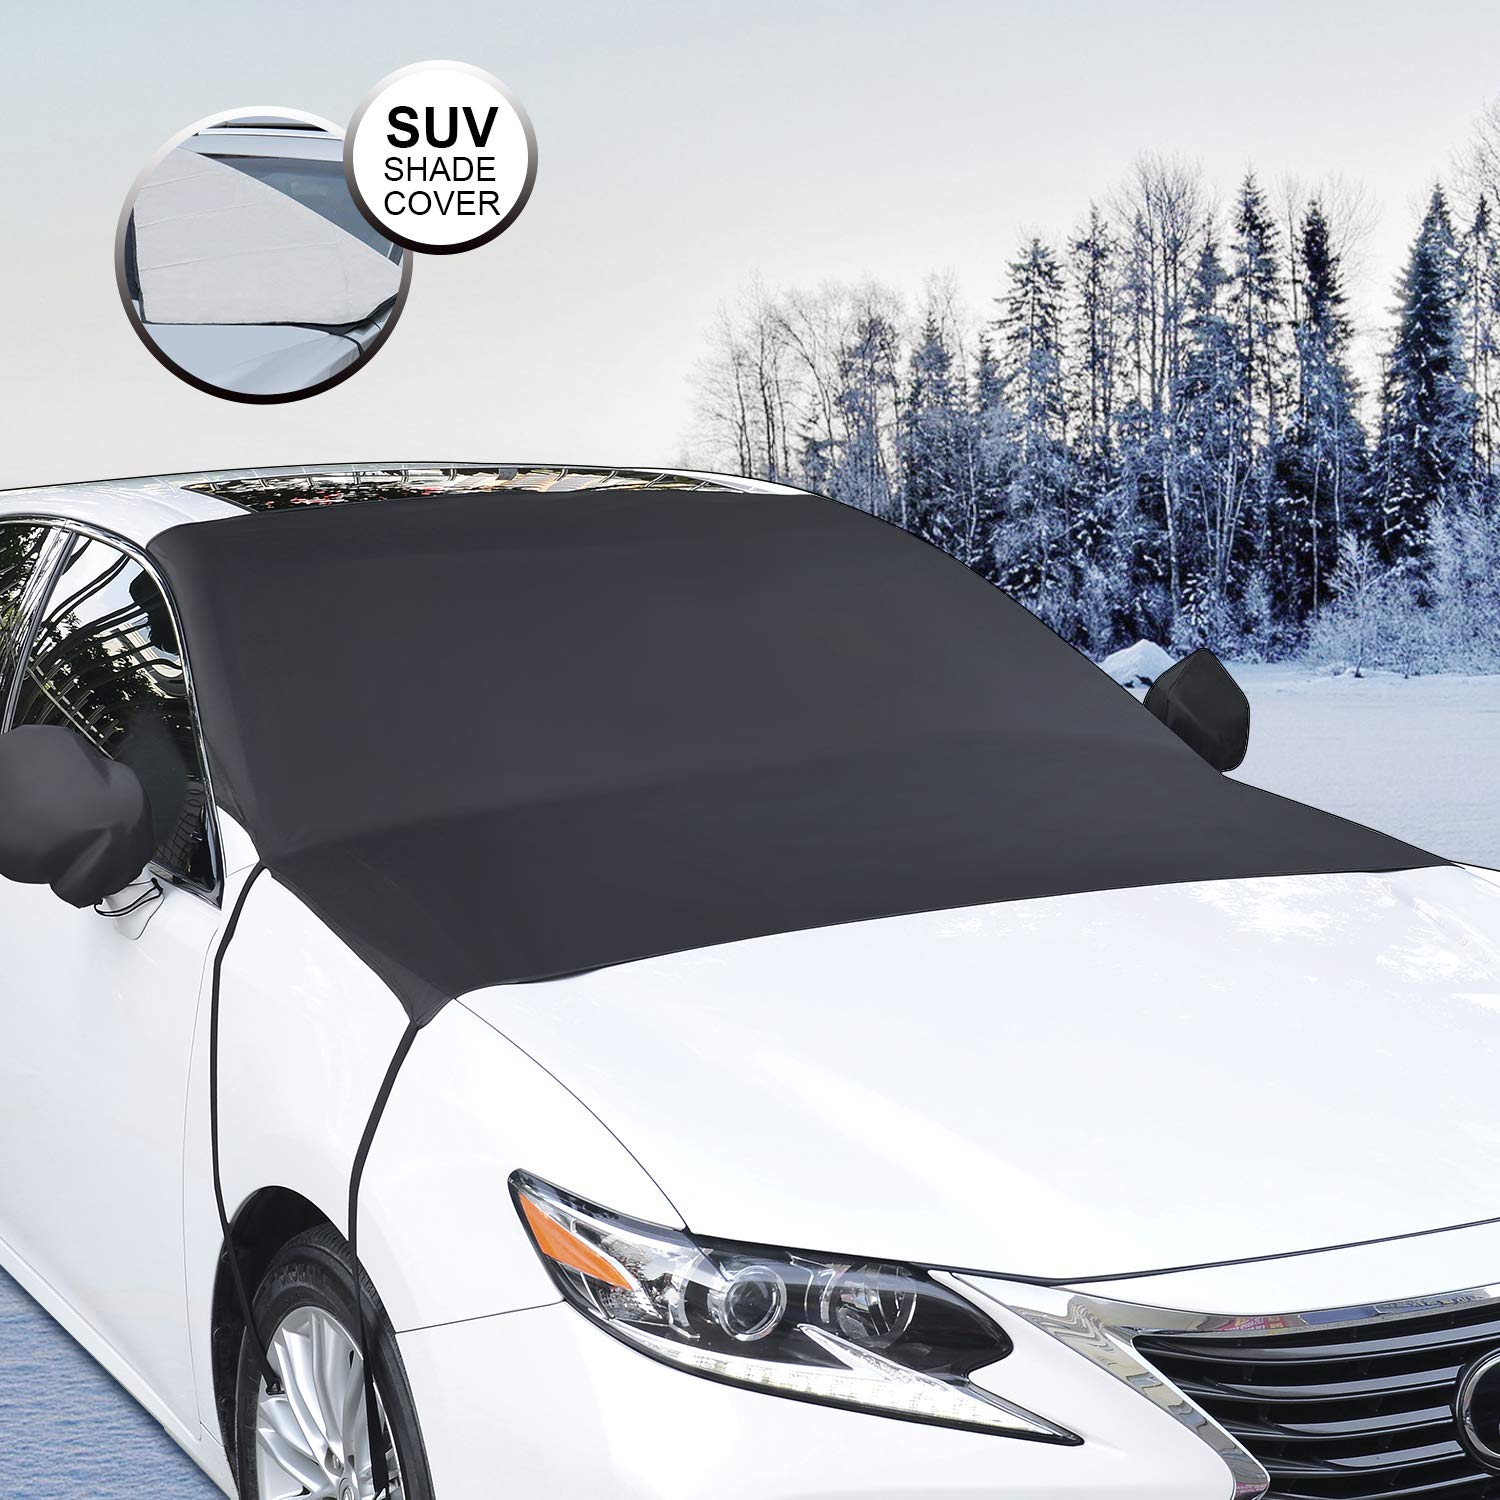 Ice Double Side Design,Snow SUVs 87x60 Frost Guard Waterproof Windshield Protector with Side Mirror Covers Whew Car Windshield Snow Cover MPVs Frost,UV Full Protection for Trucks